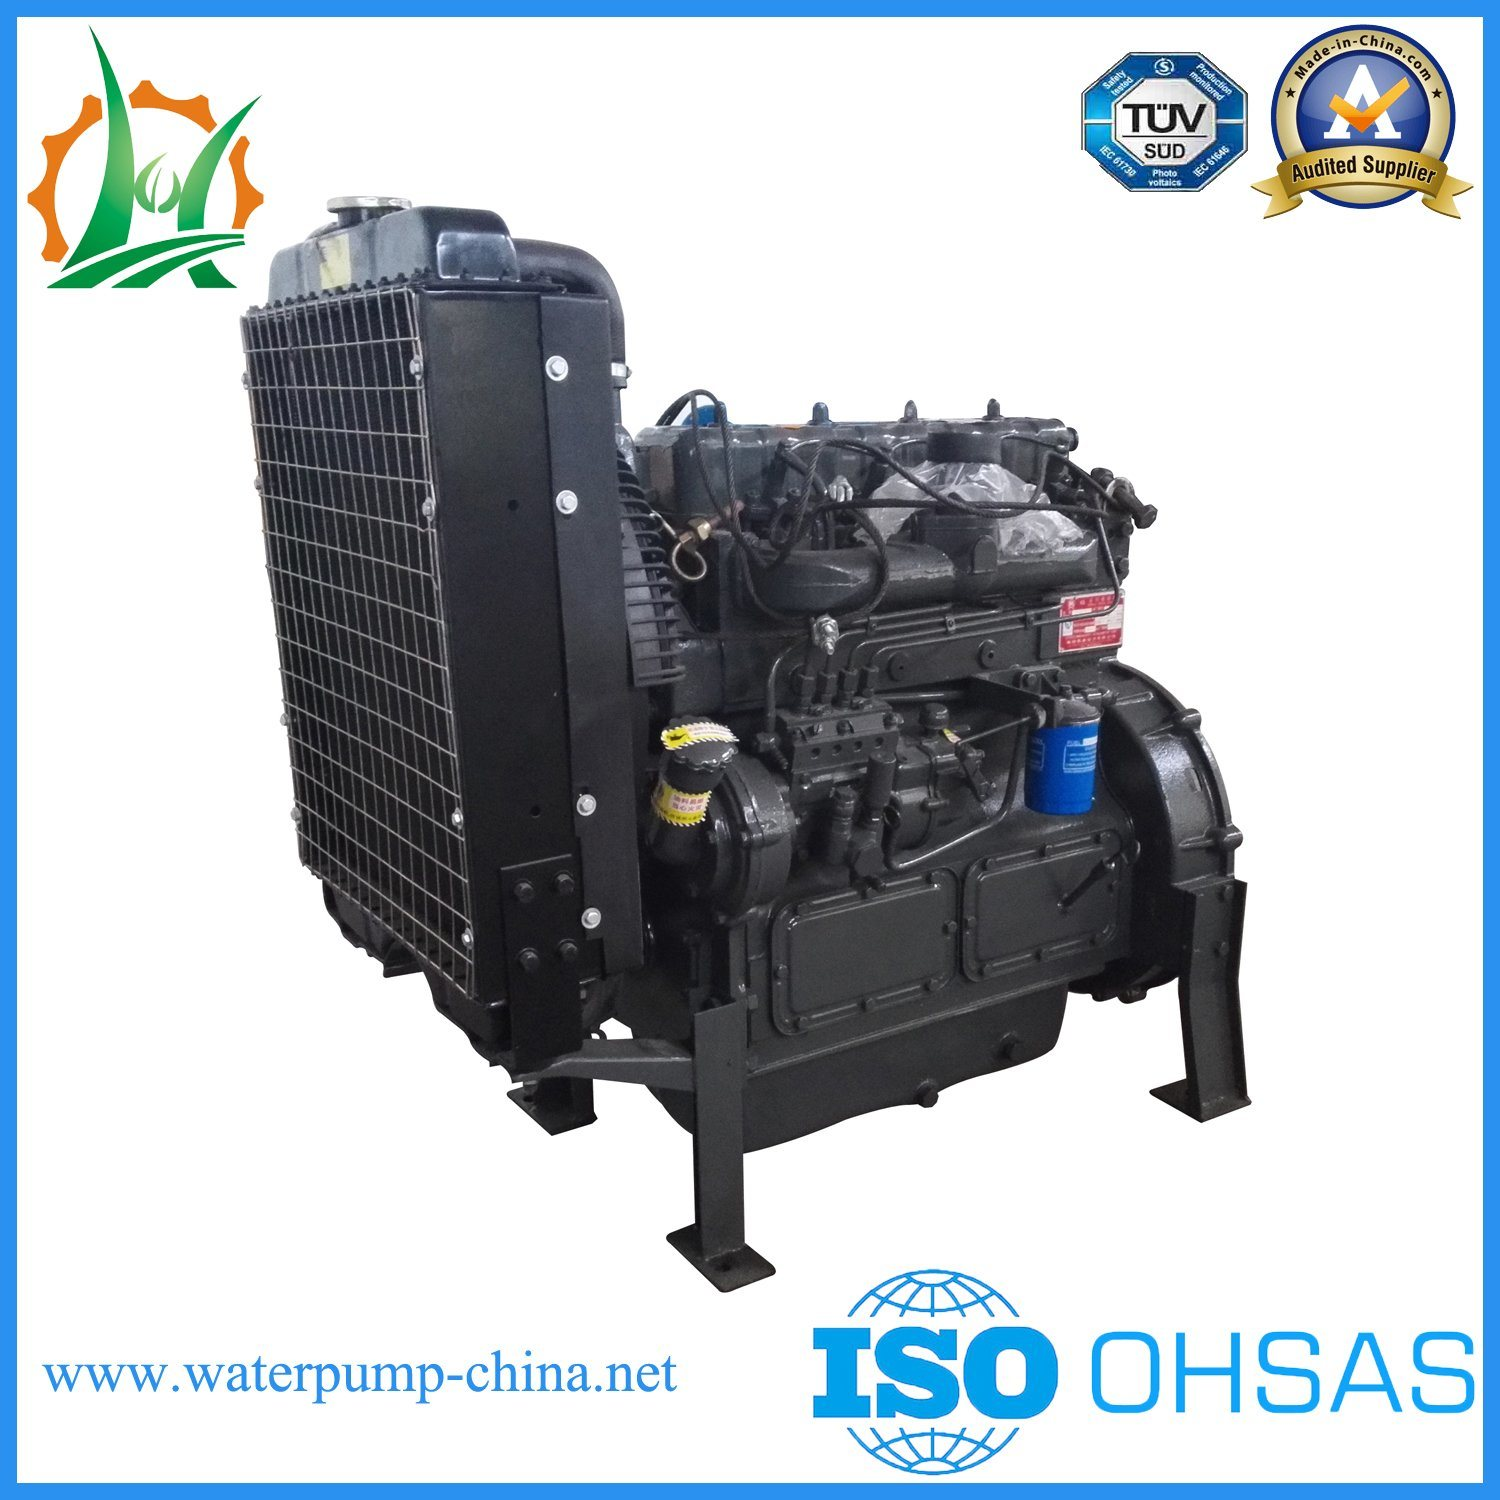 Trash Diesel Engine Dewatering Split Case Water Pump Trailer